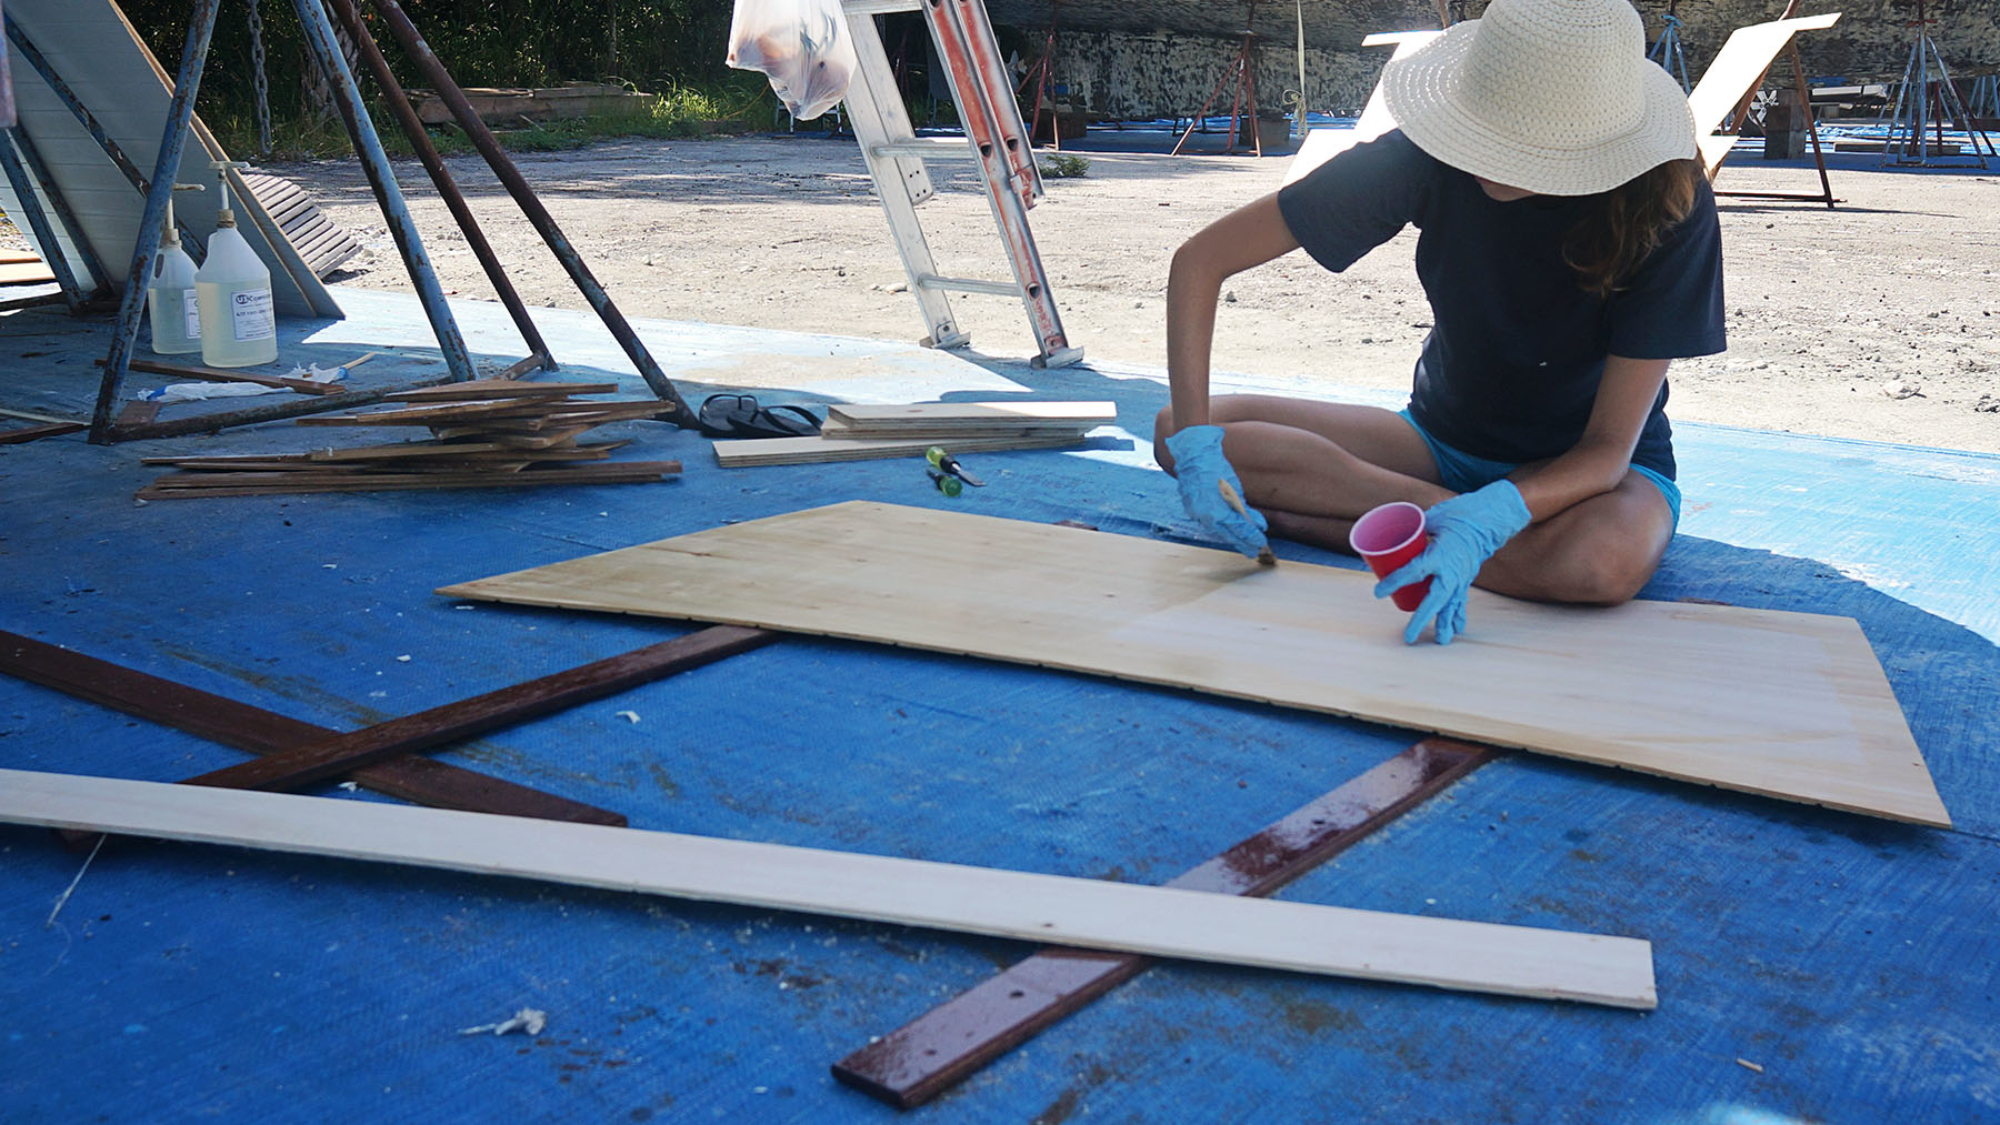 epoxy coating boards